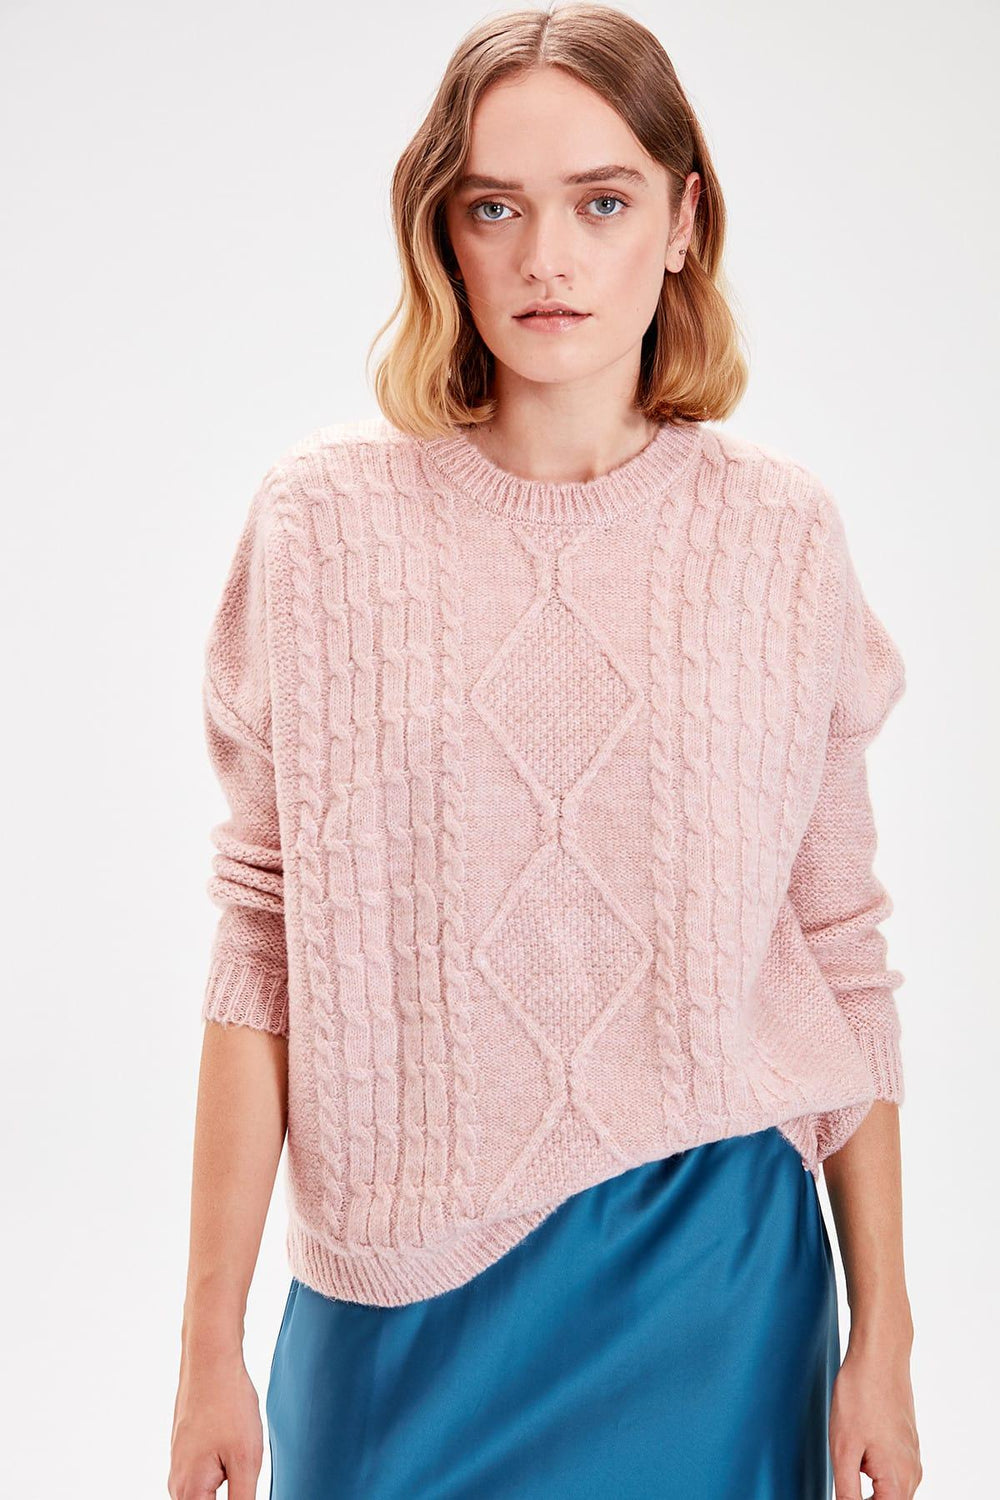 Powder Braided Knitwear Sweater - Top Maxy